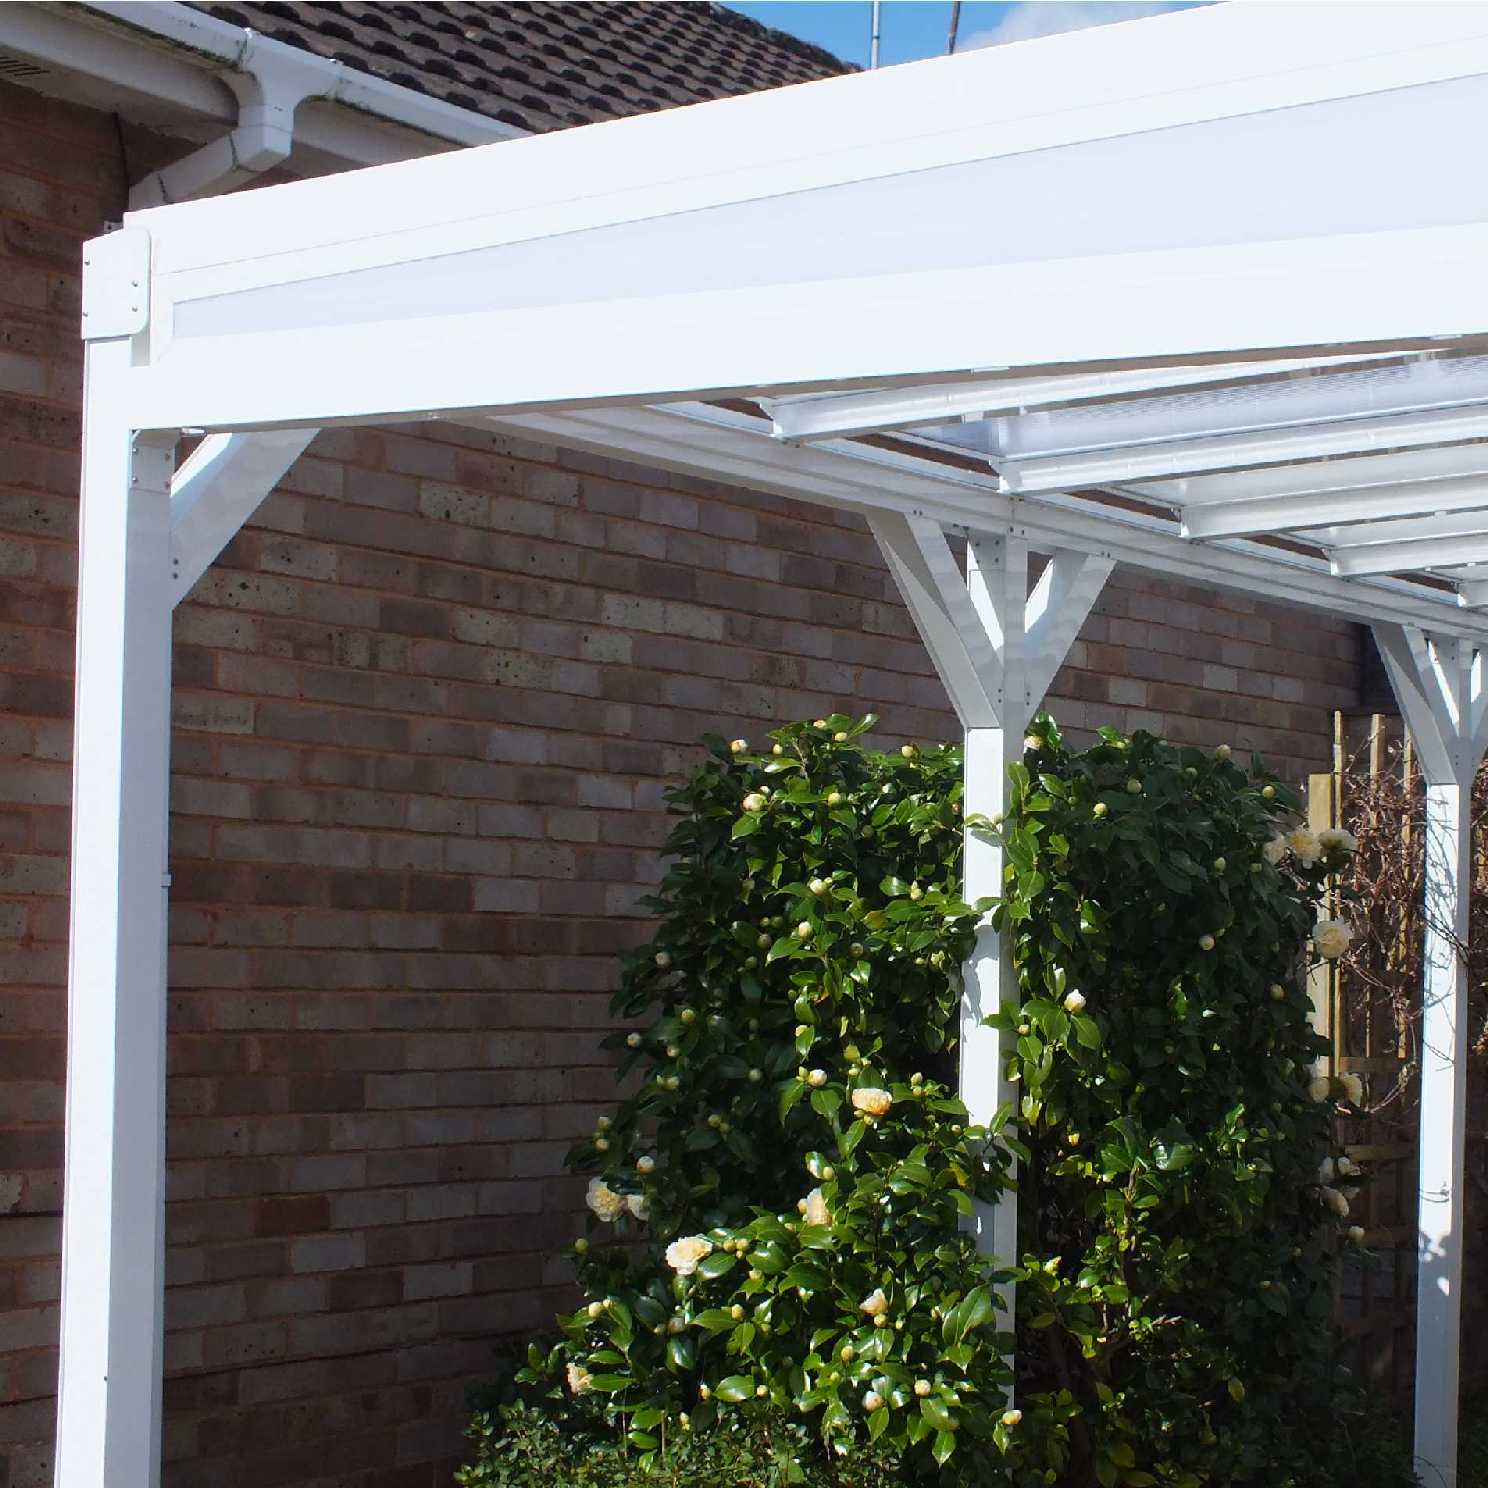 Omega Smart White Lean-To Canopy with 16mm Polycarbonate Glazing - 3.1m (W) x 3.0m (P), (2) Supporting Posts from Omega Build